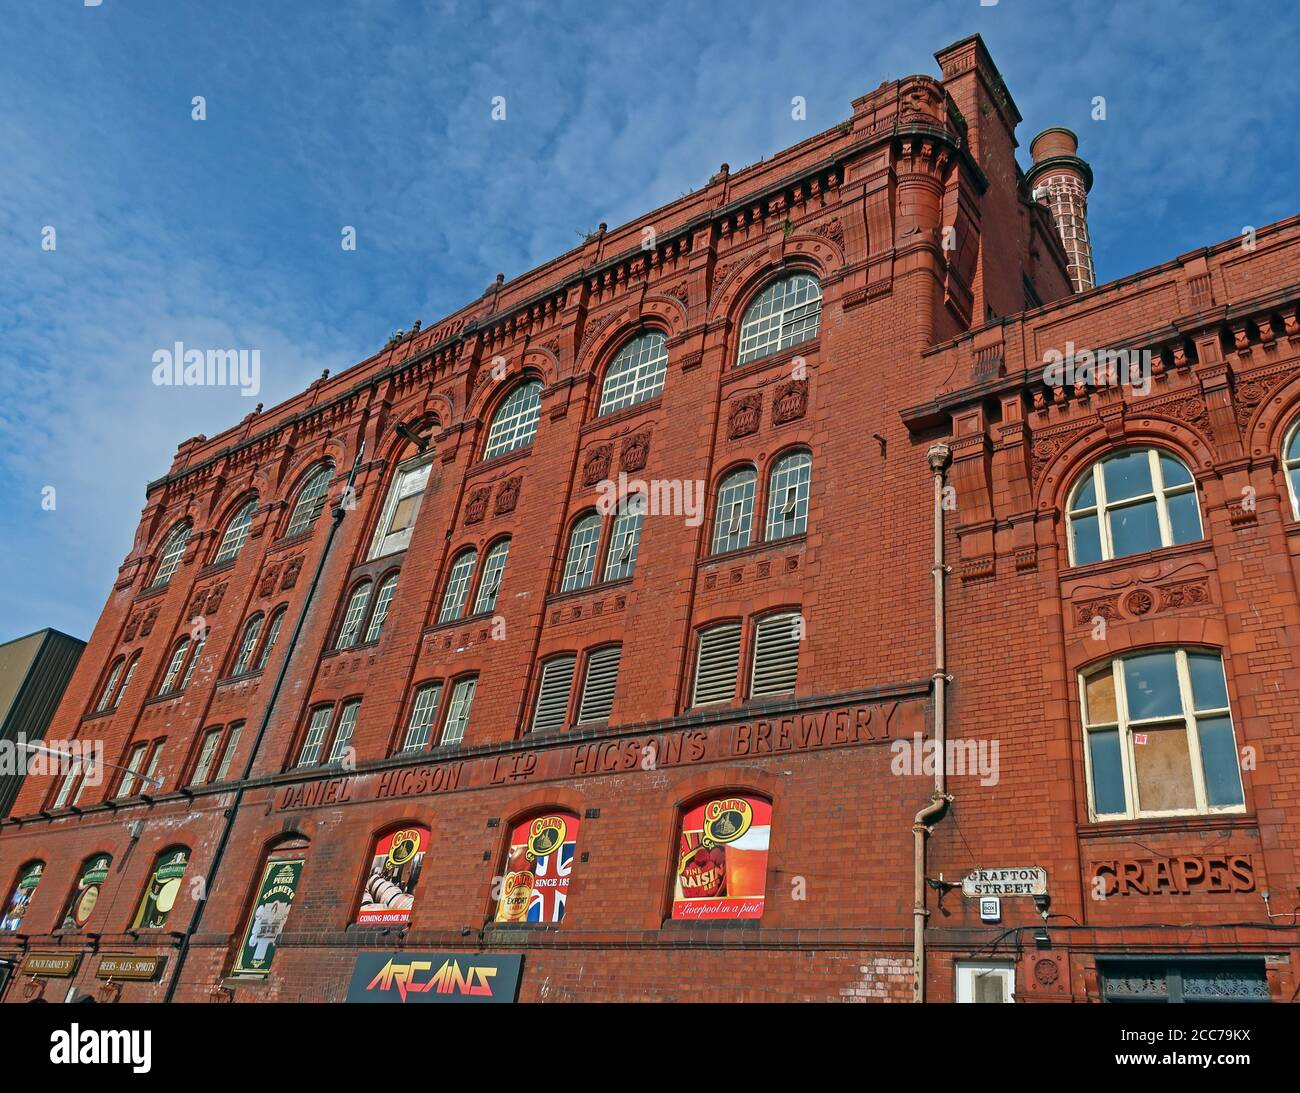 Dieses Stockfoto: Higsons, Cains Brewery, 39 Stanhope St, Liverpool, Merseyside, England, UK, L8 5RE - 2CC79K